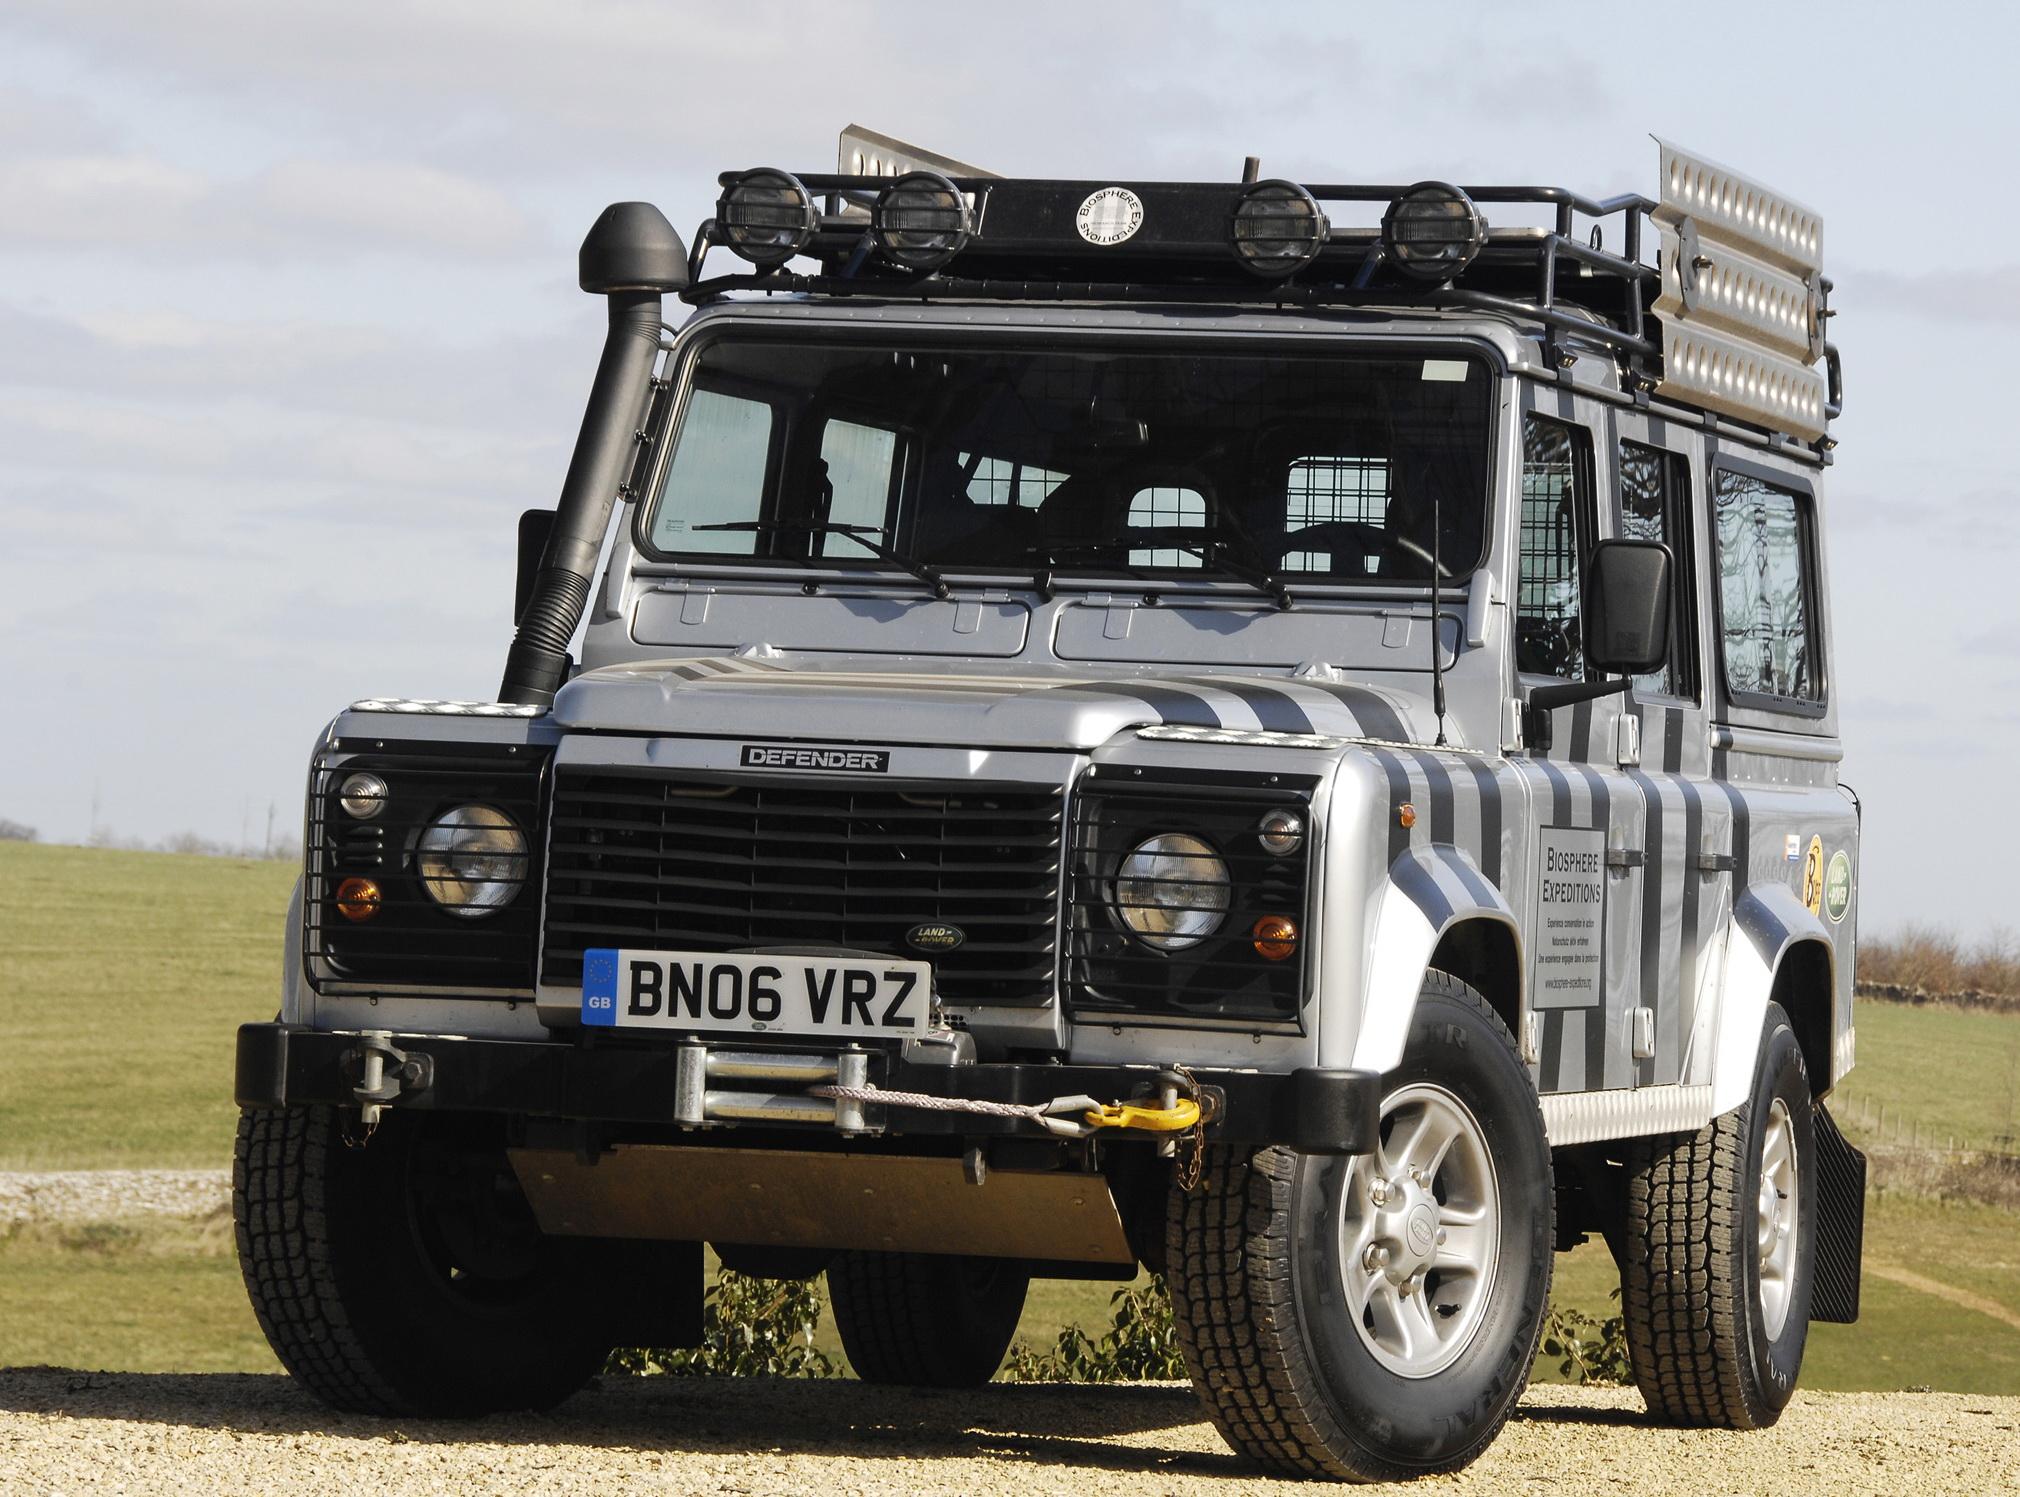 Invitation for the purchase of vehicles - Land rover defender 110 tdi year